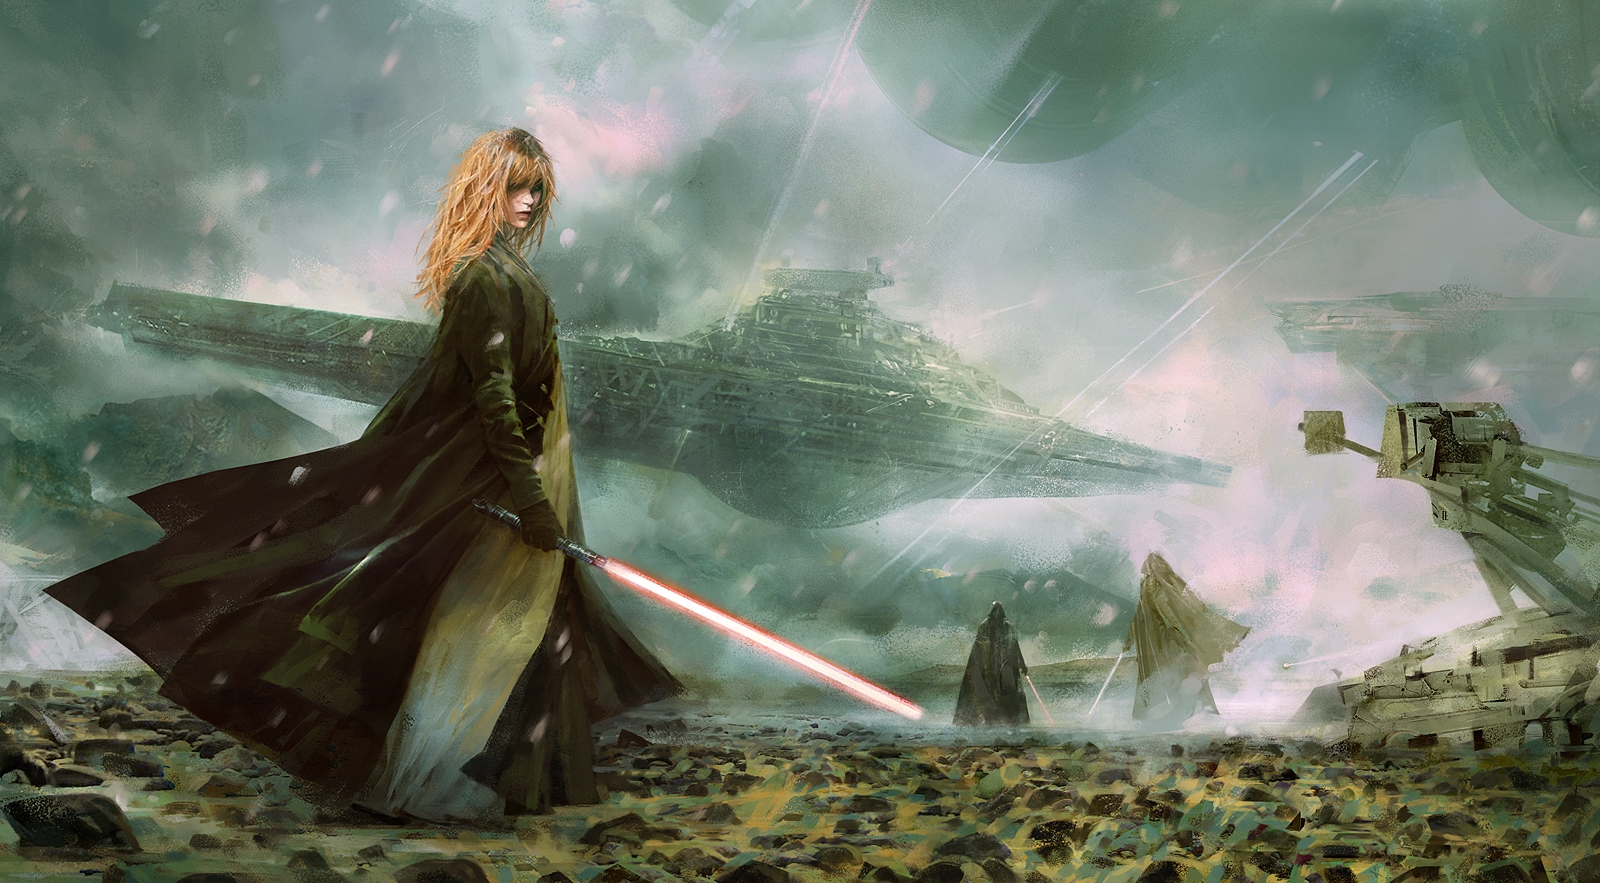 Star Wars Concept Art and Illustrations I